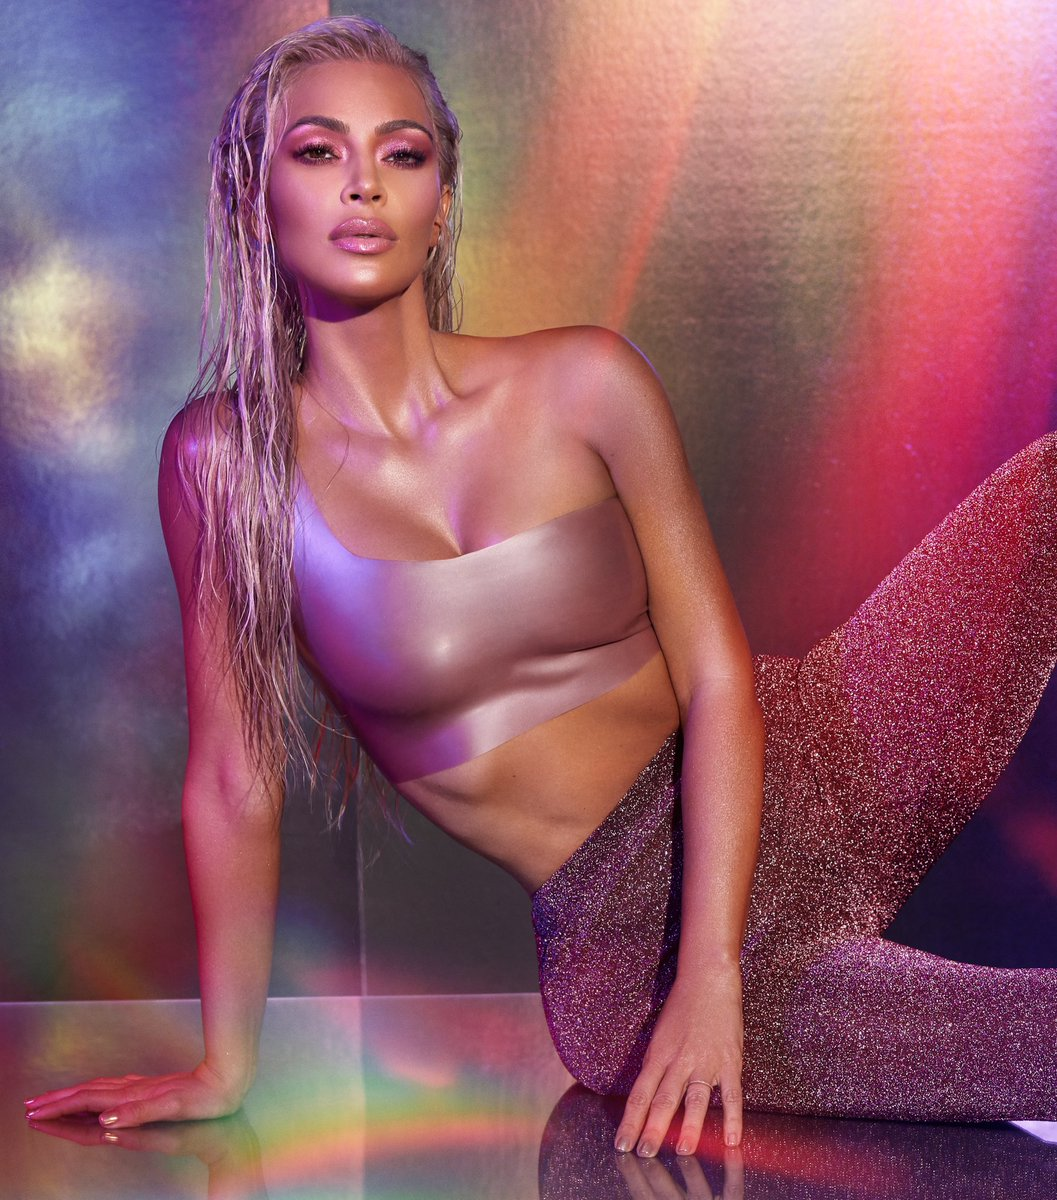 RT @kkwbeauty: Happy 2 Year Anniversary to us! ✨ Take a look at some of our favorite campaign images. #KKWBEAUTY https://t.co/rsfJ5ImdQi